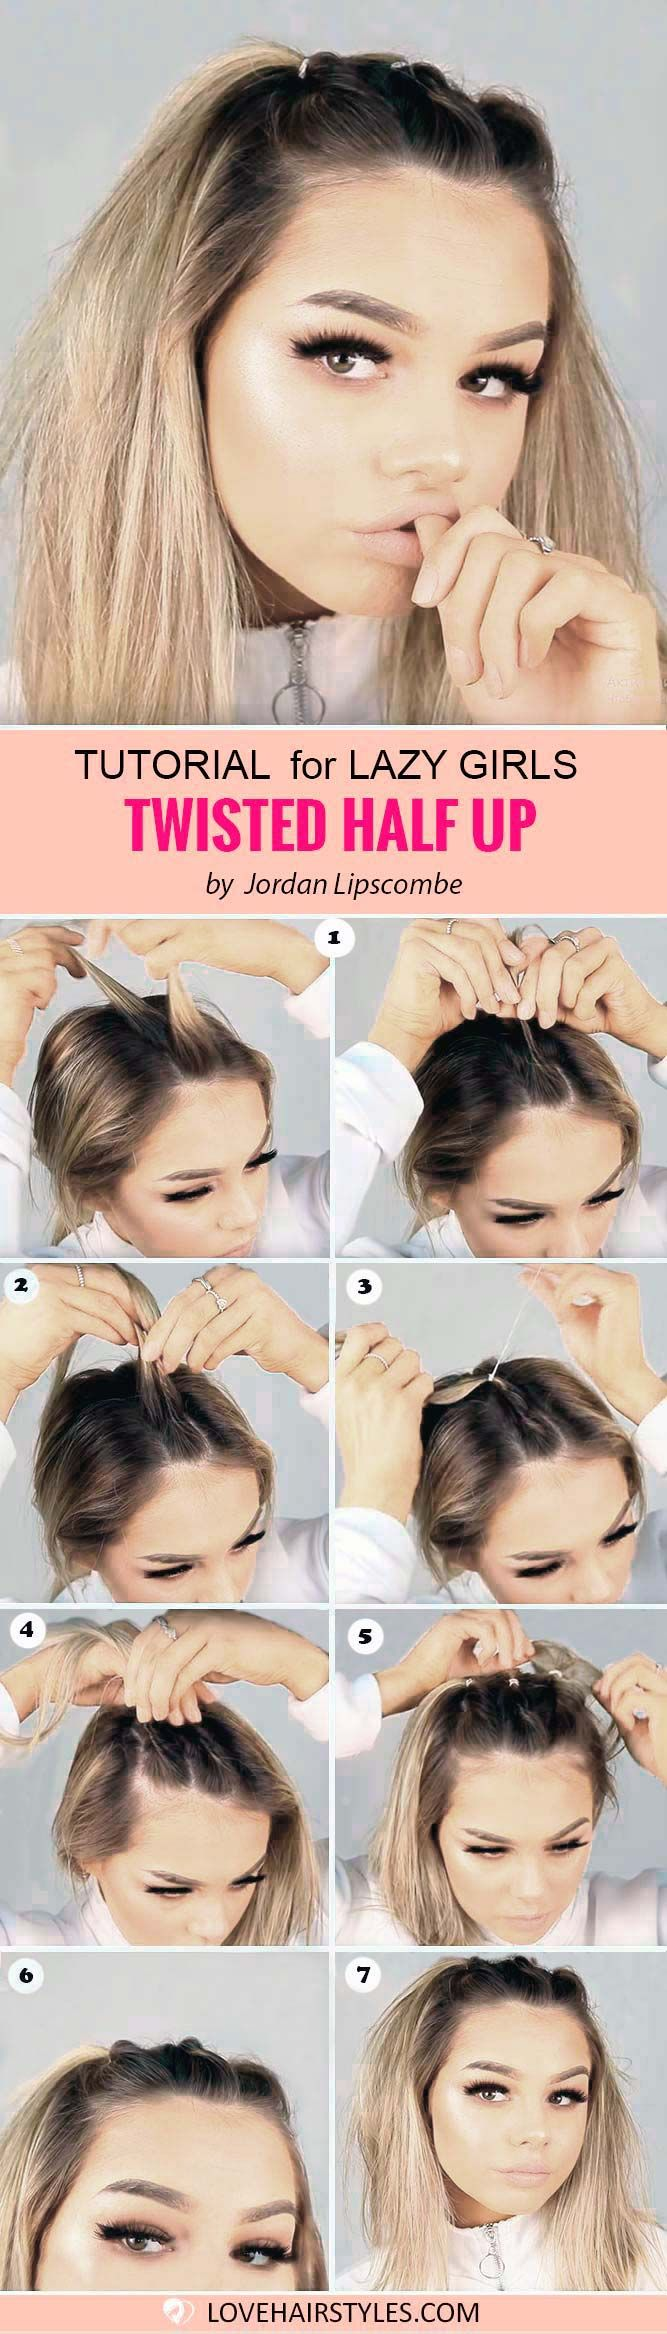 lazy hairstyles ideas